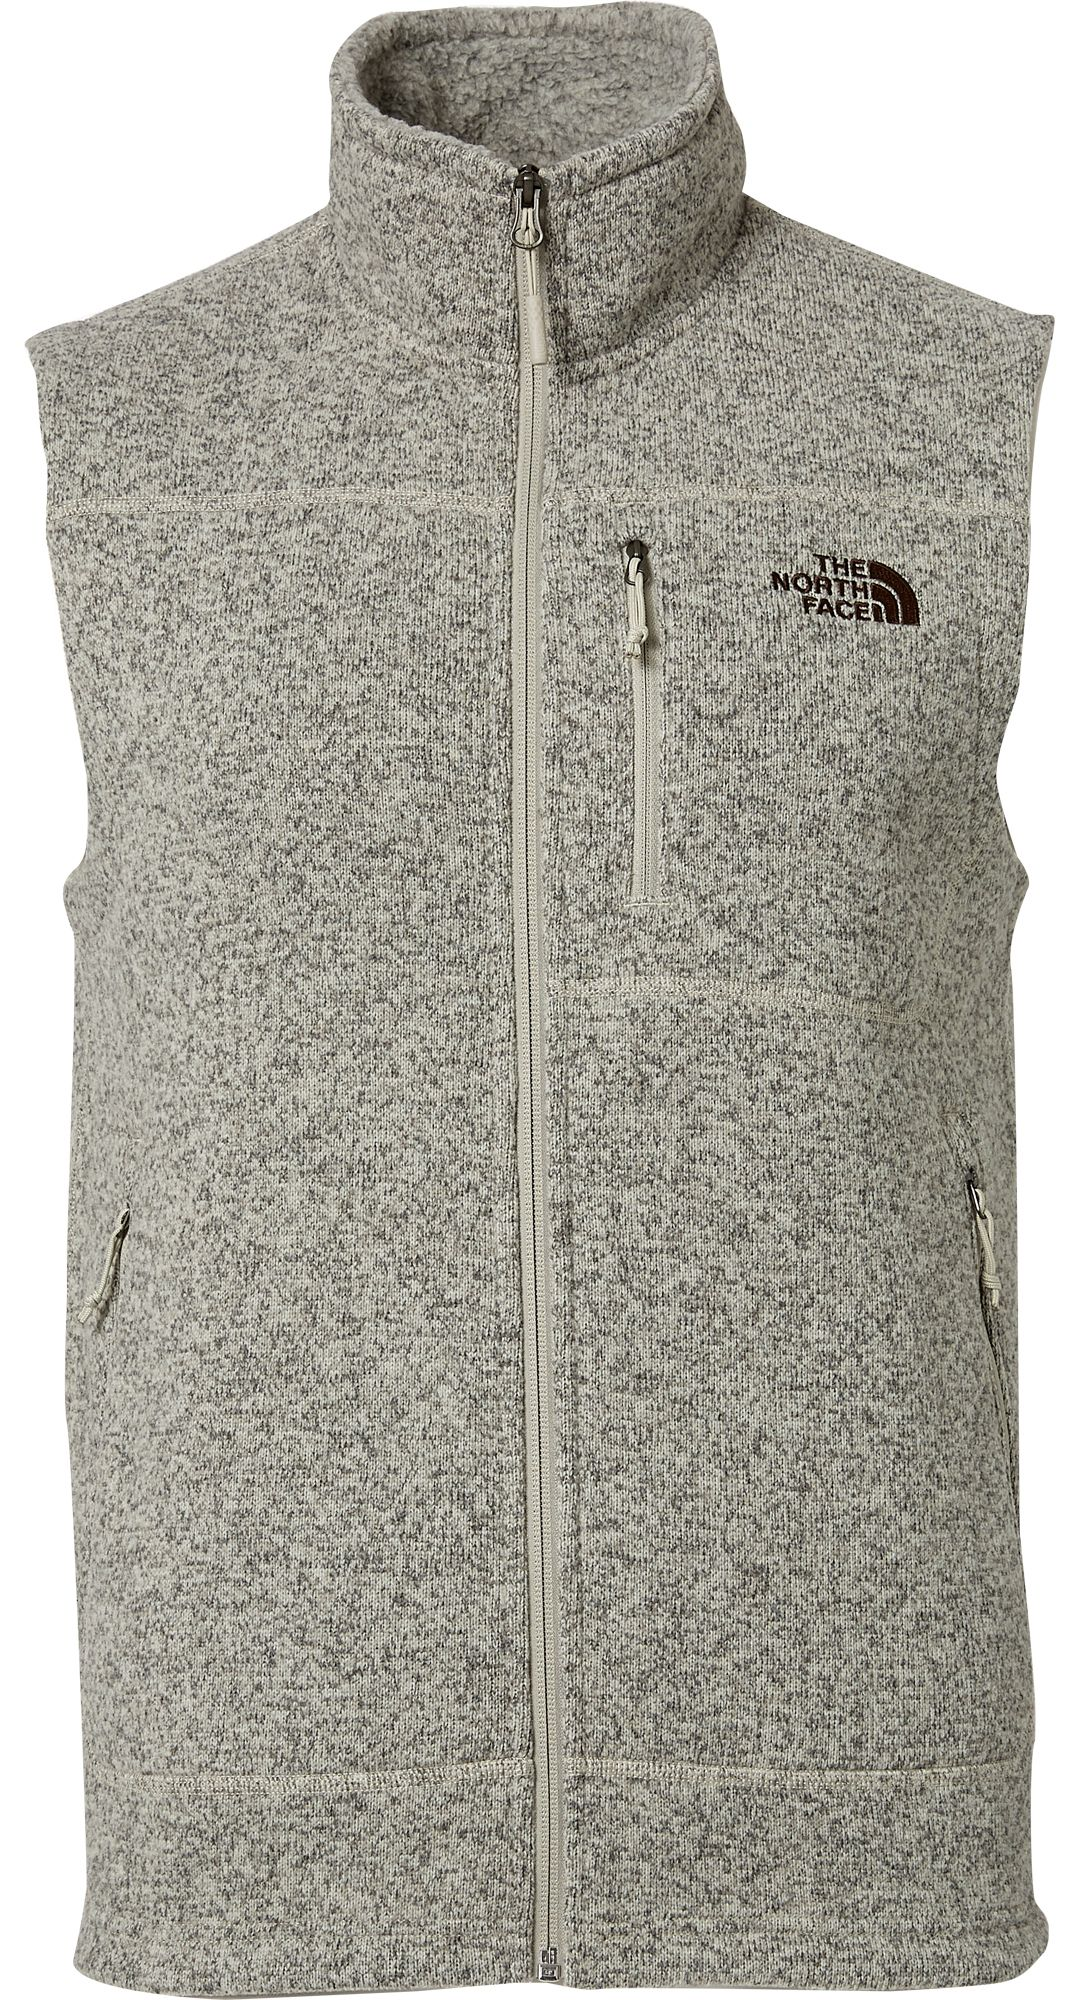 805546bd9 The North Face Men's Gordon Lyons Fleece Vest